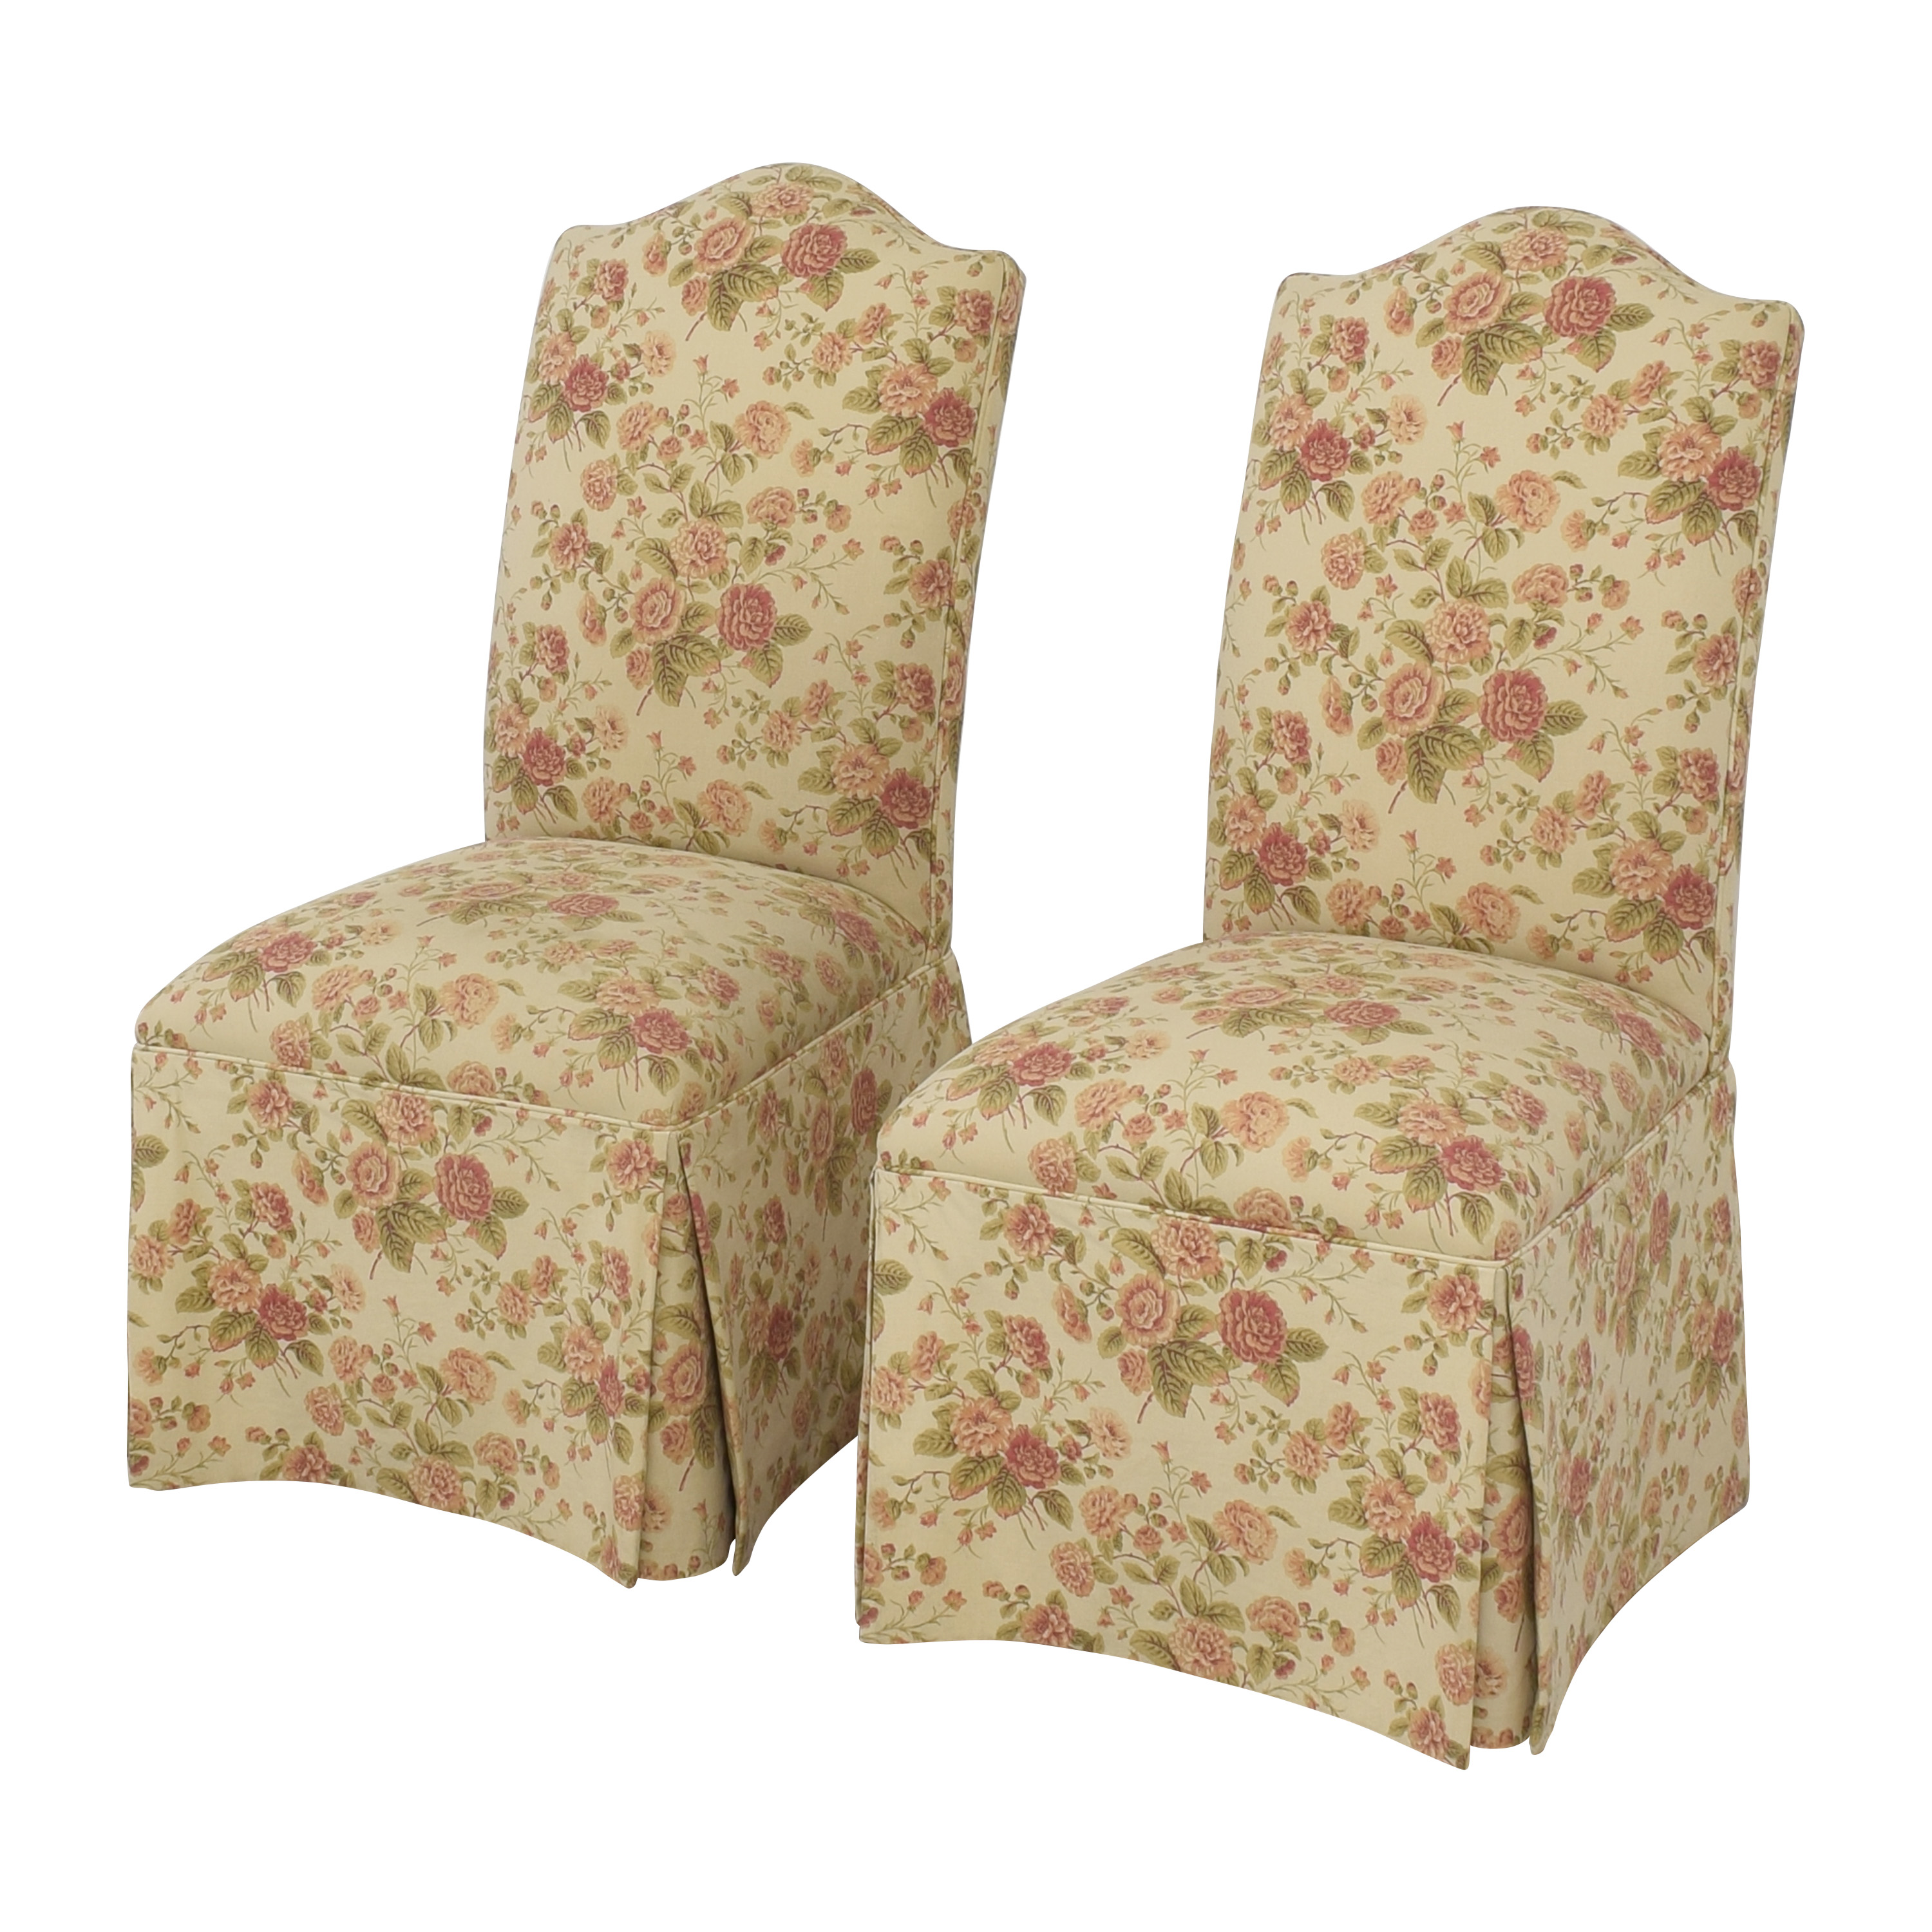 Ethan Allen Ethan Allen Olivia Dining Chairs coupon